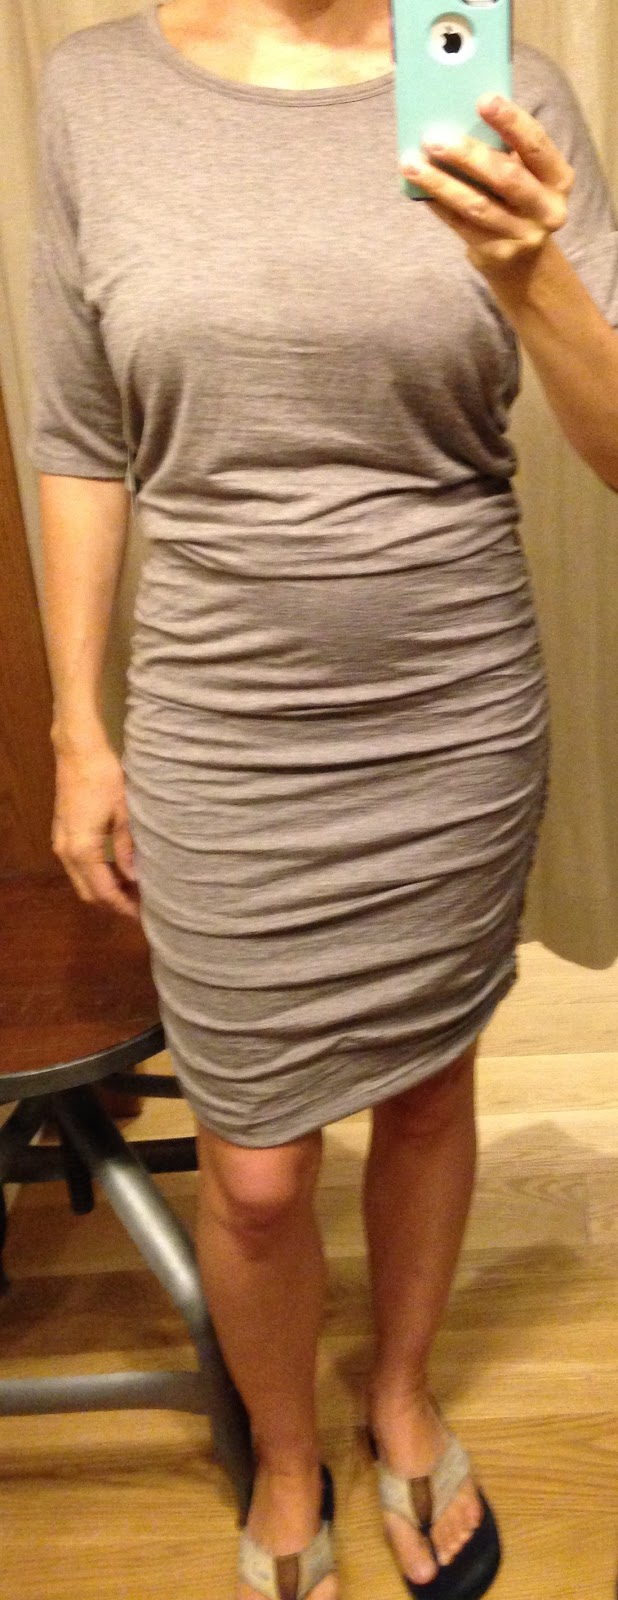 ShOperaRach: Athleta Reviews: Dresses - Solstice, Topanga, Lively ...